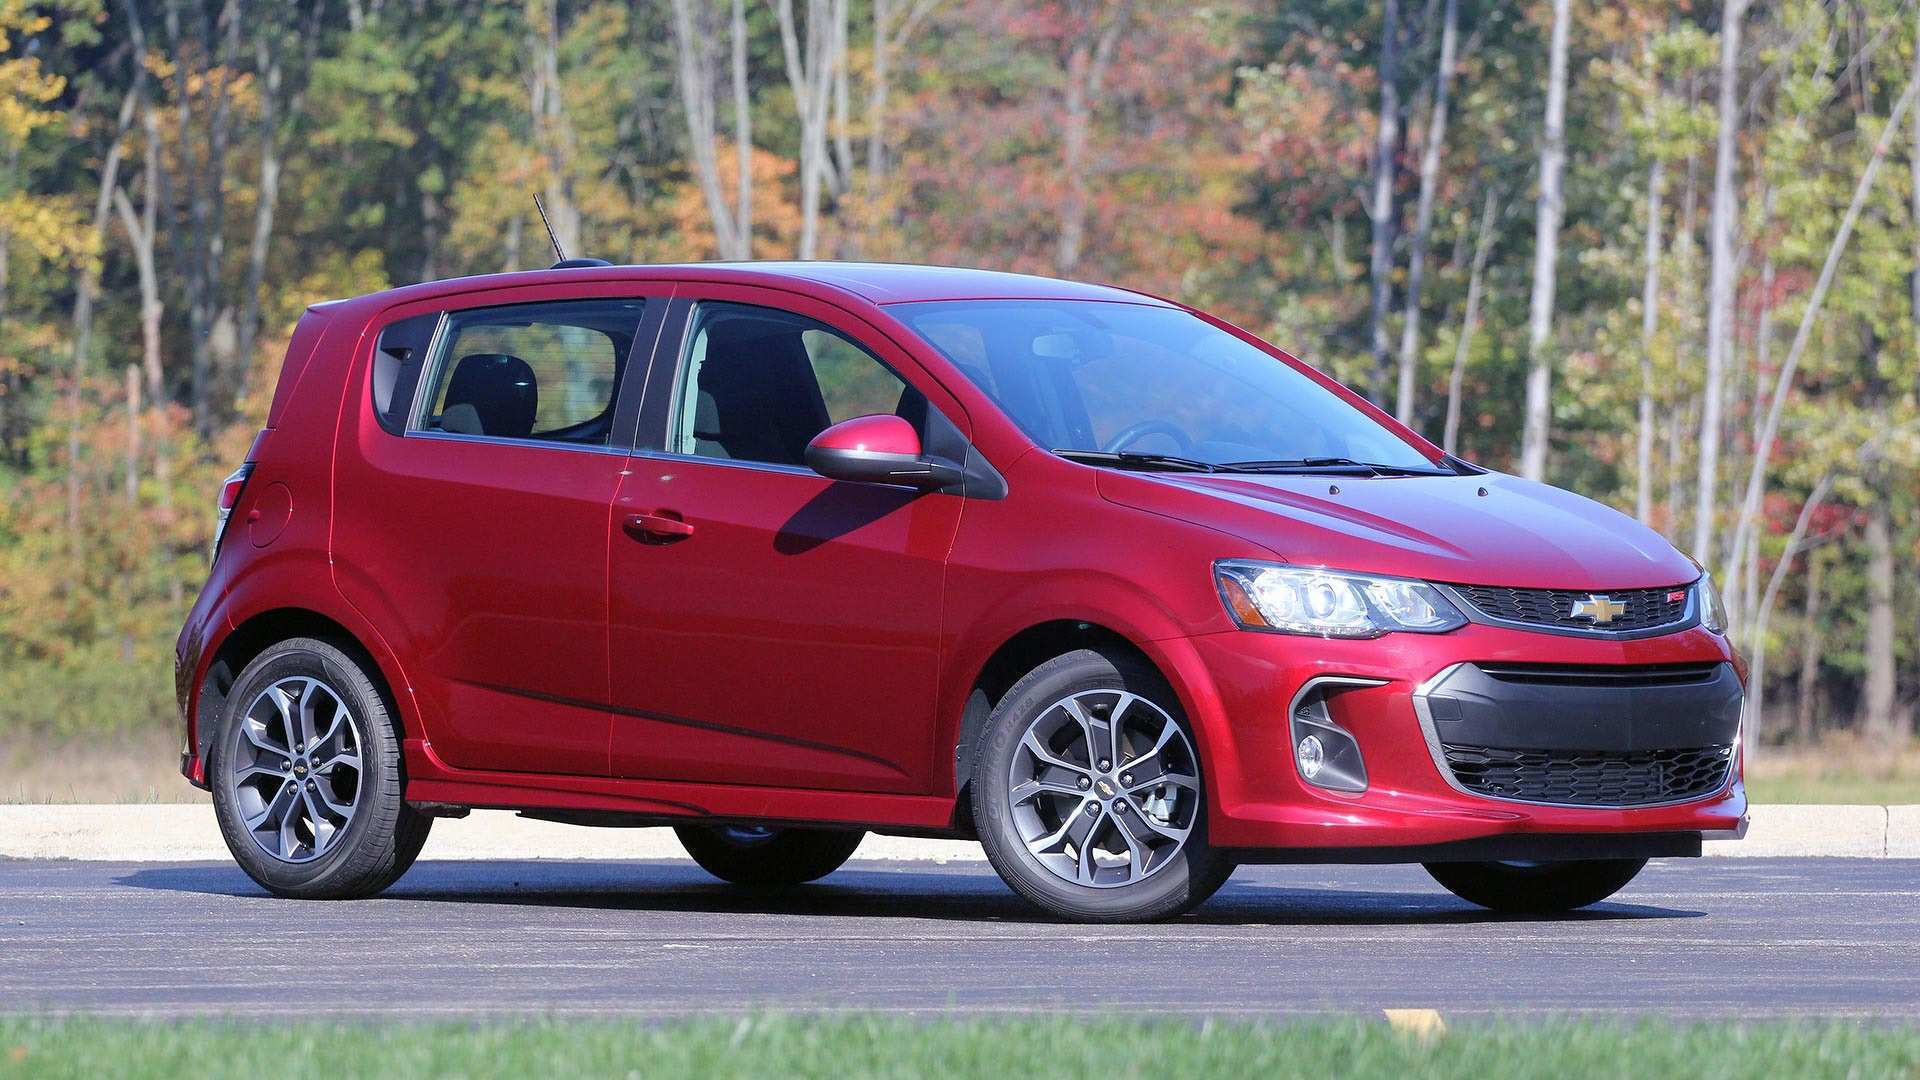 98 All New 2020 Chevy Sonic New Concept for 2020 Chevy Sonic